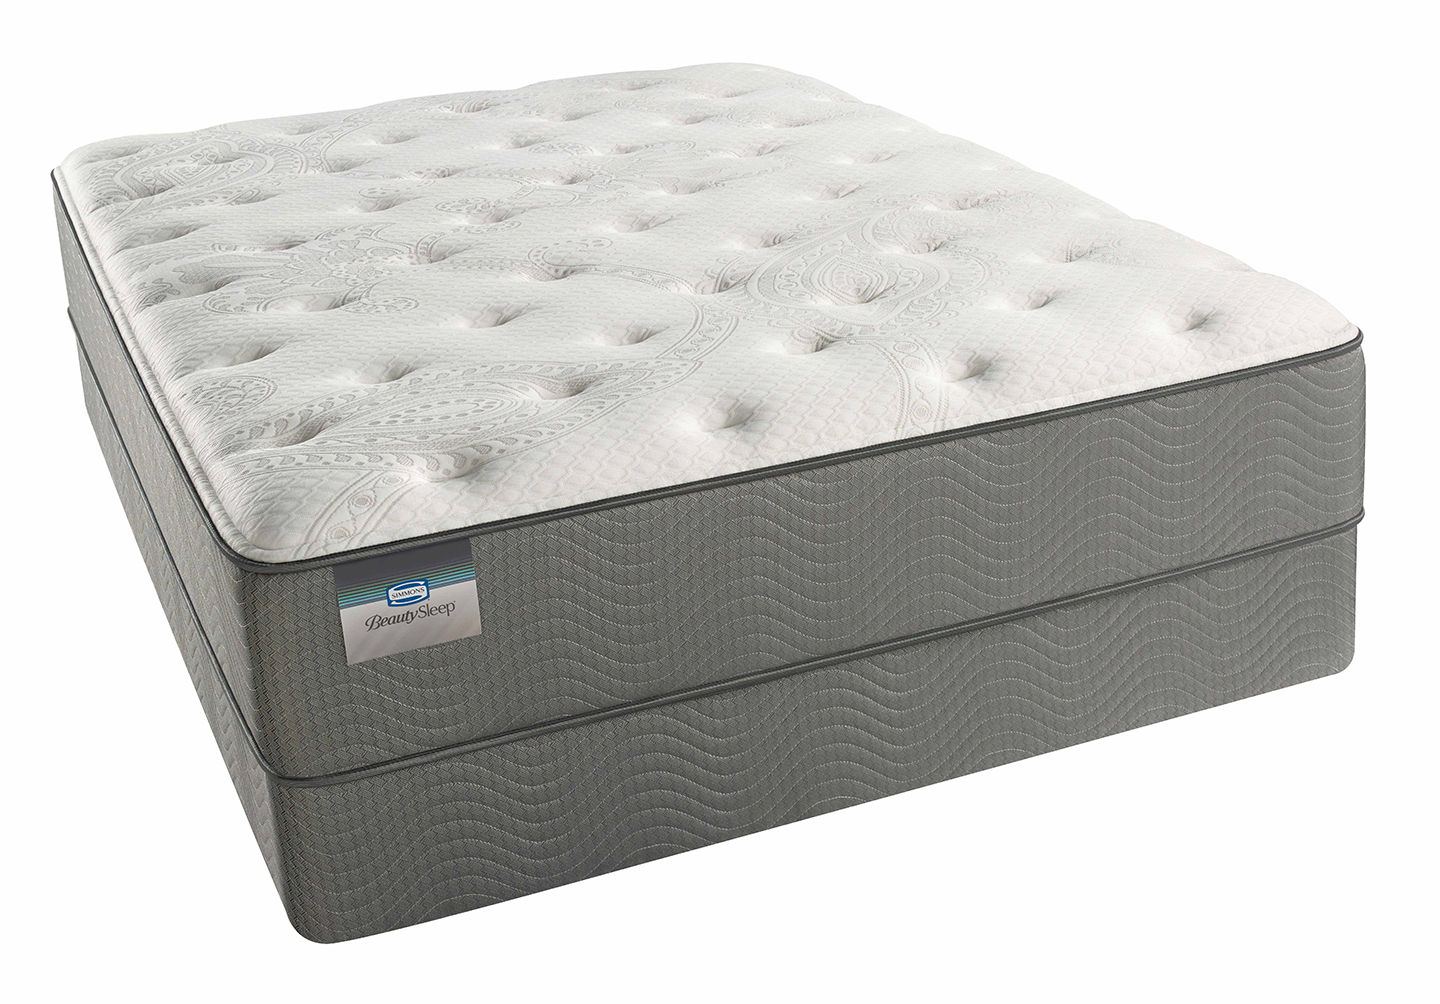 Archers Cay Tight Top Luxury Firm Mattress – AWFCO Catalog